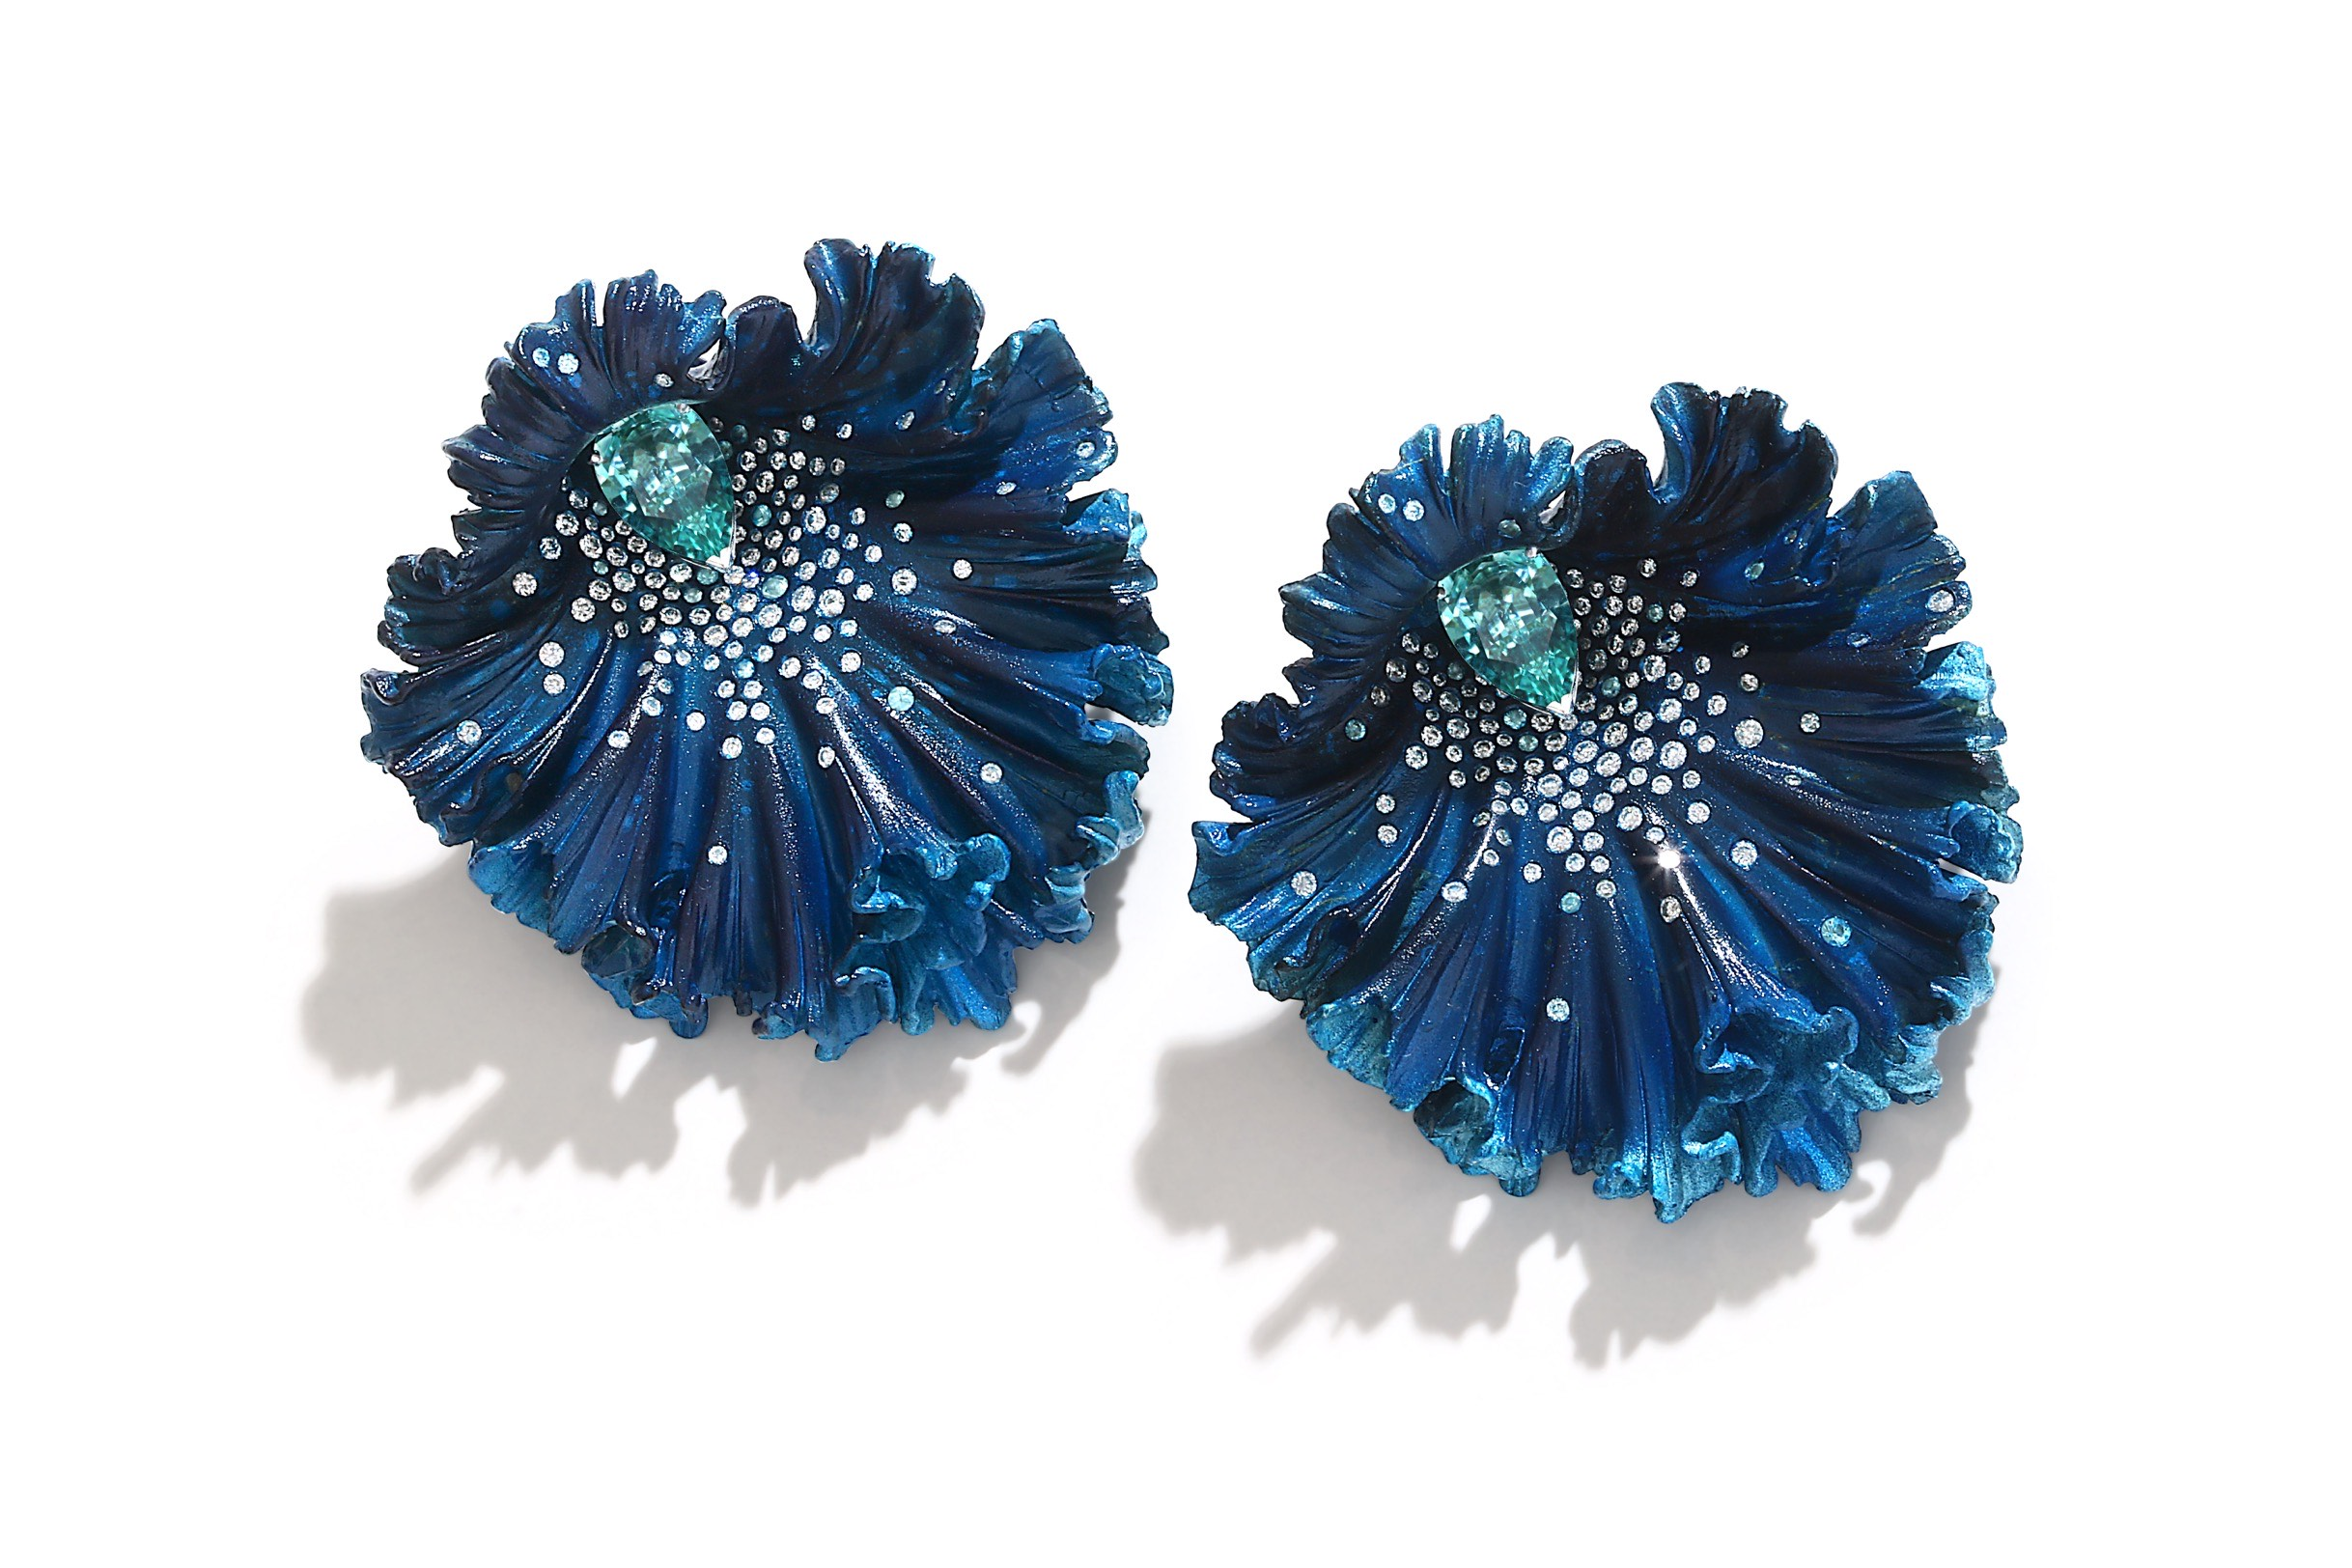 Blue Orchid Earrings. Aluminium, Diamonds and Aquamarine. Image Courtesy of Emmanuel Tarpin